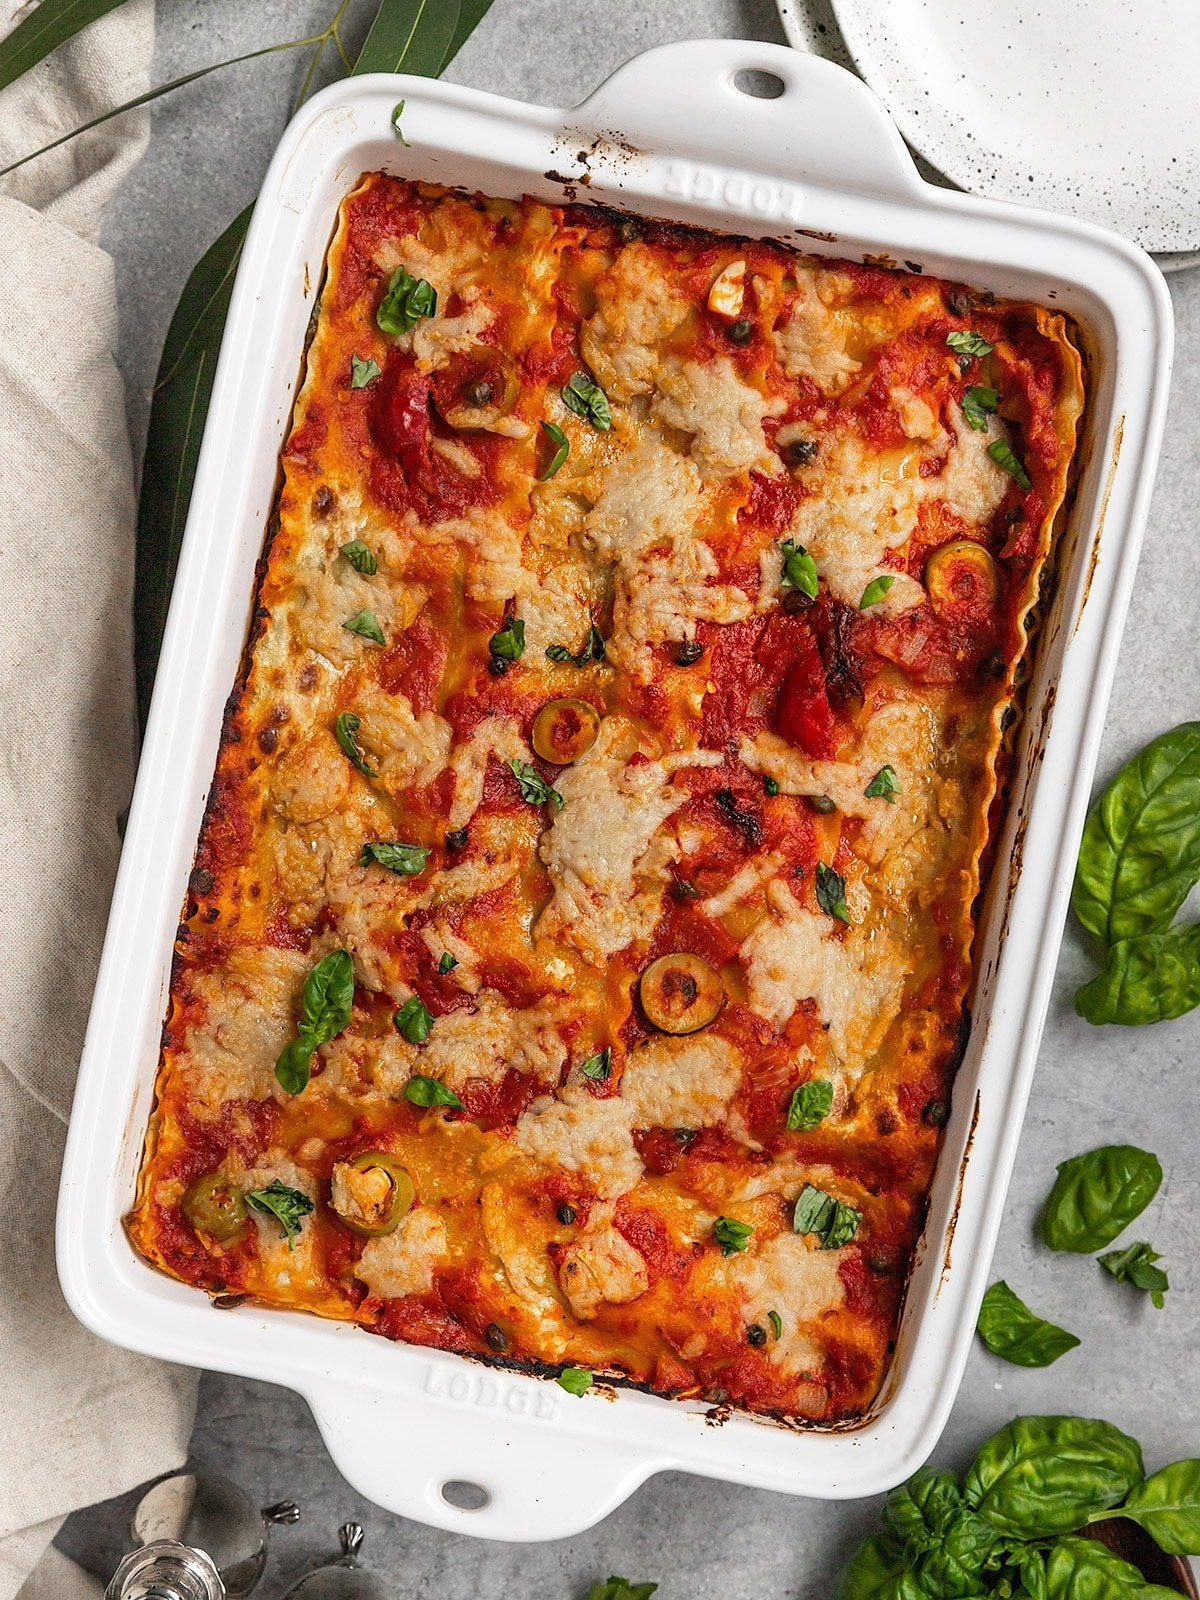 a large casserole dish filled with lasagna topped with tomato sauce, vegan cheese, and basil